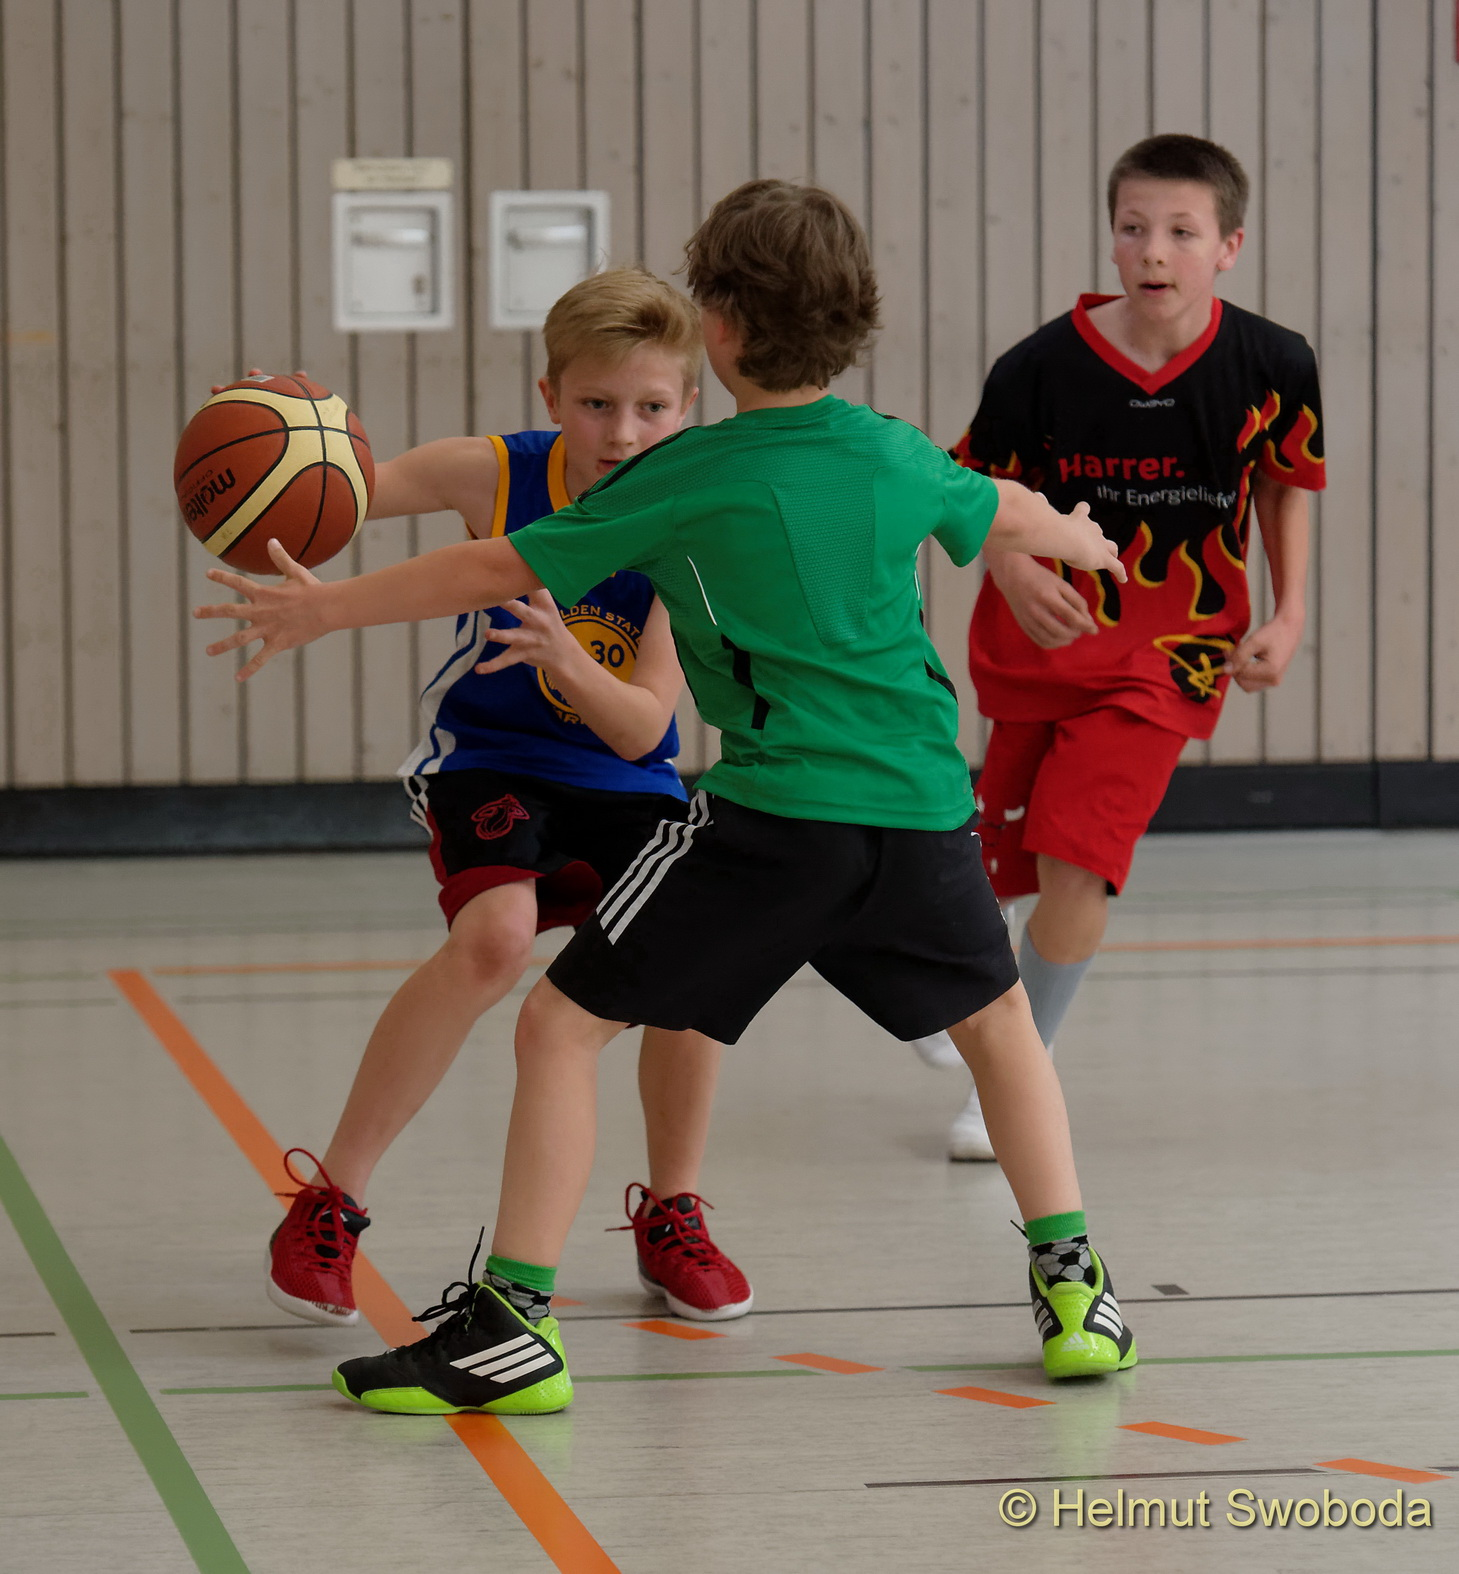 d170402-155247800-100-basketball_weilheim-mixed-turnier_33813701345_o